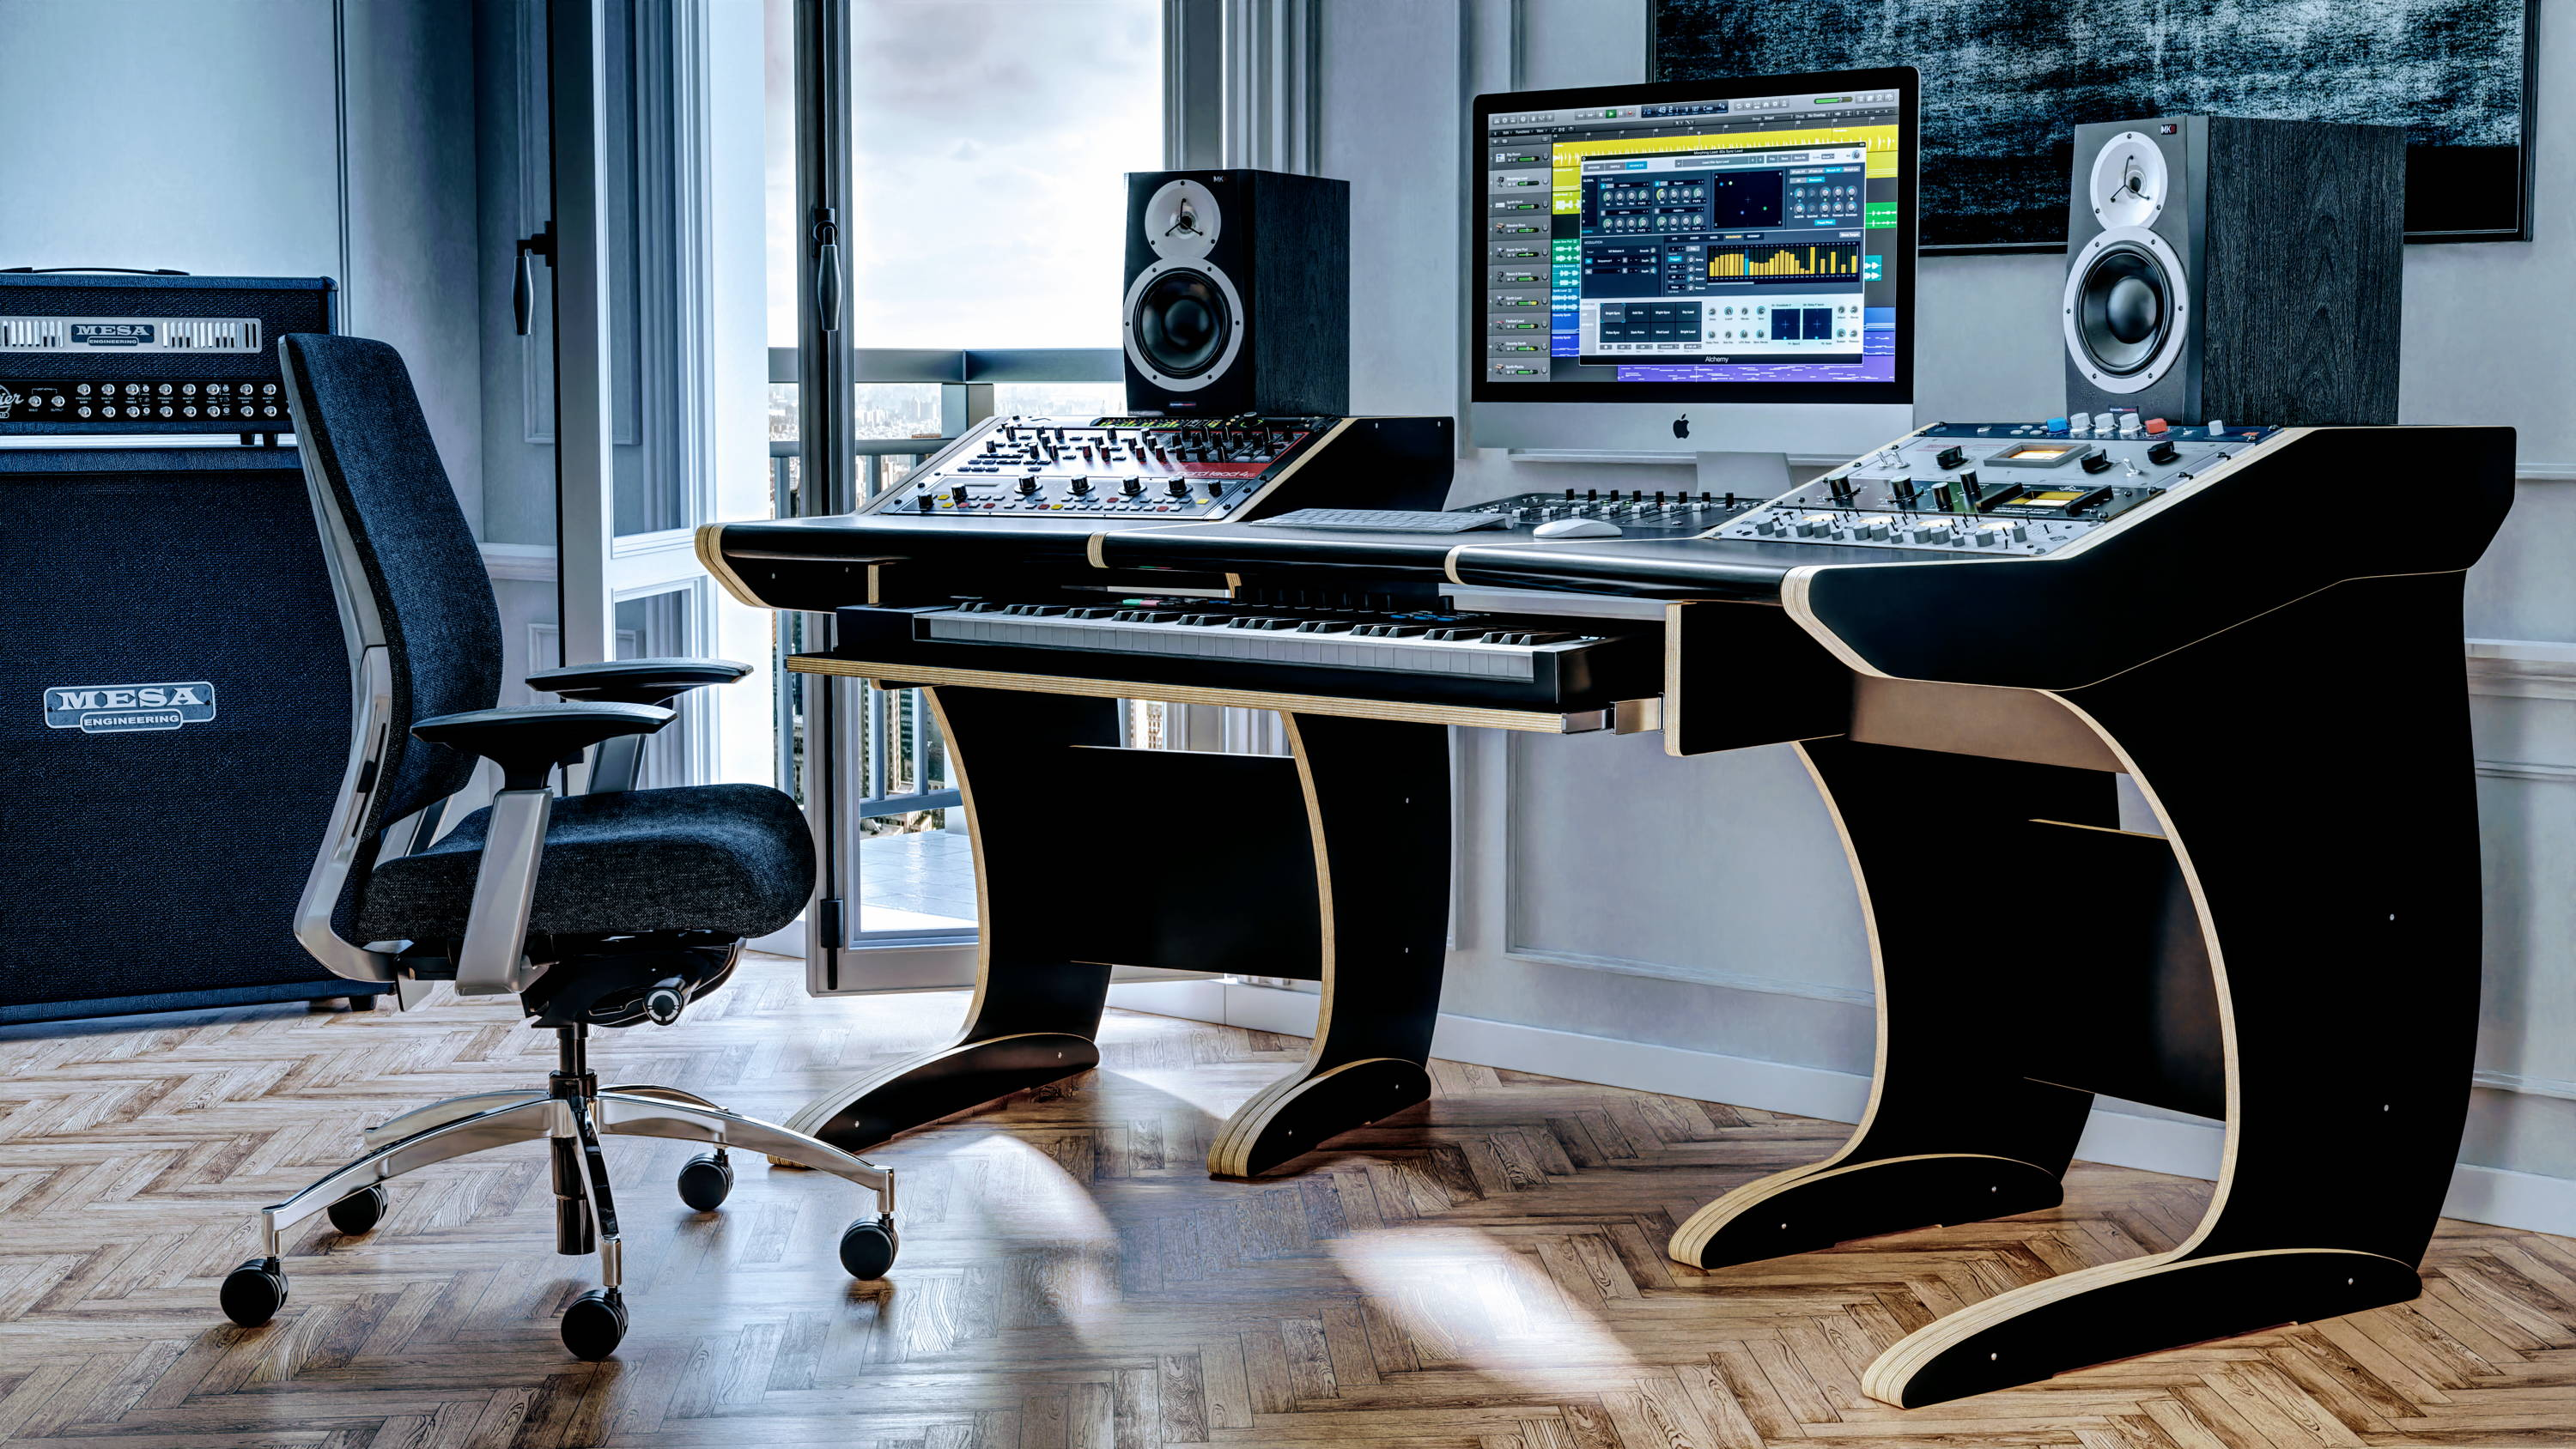 Buso Audio Buso Audio Studio Furniture For Music And Broadcast Professionals